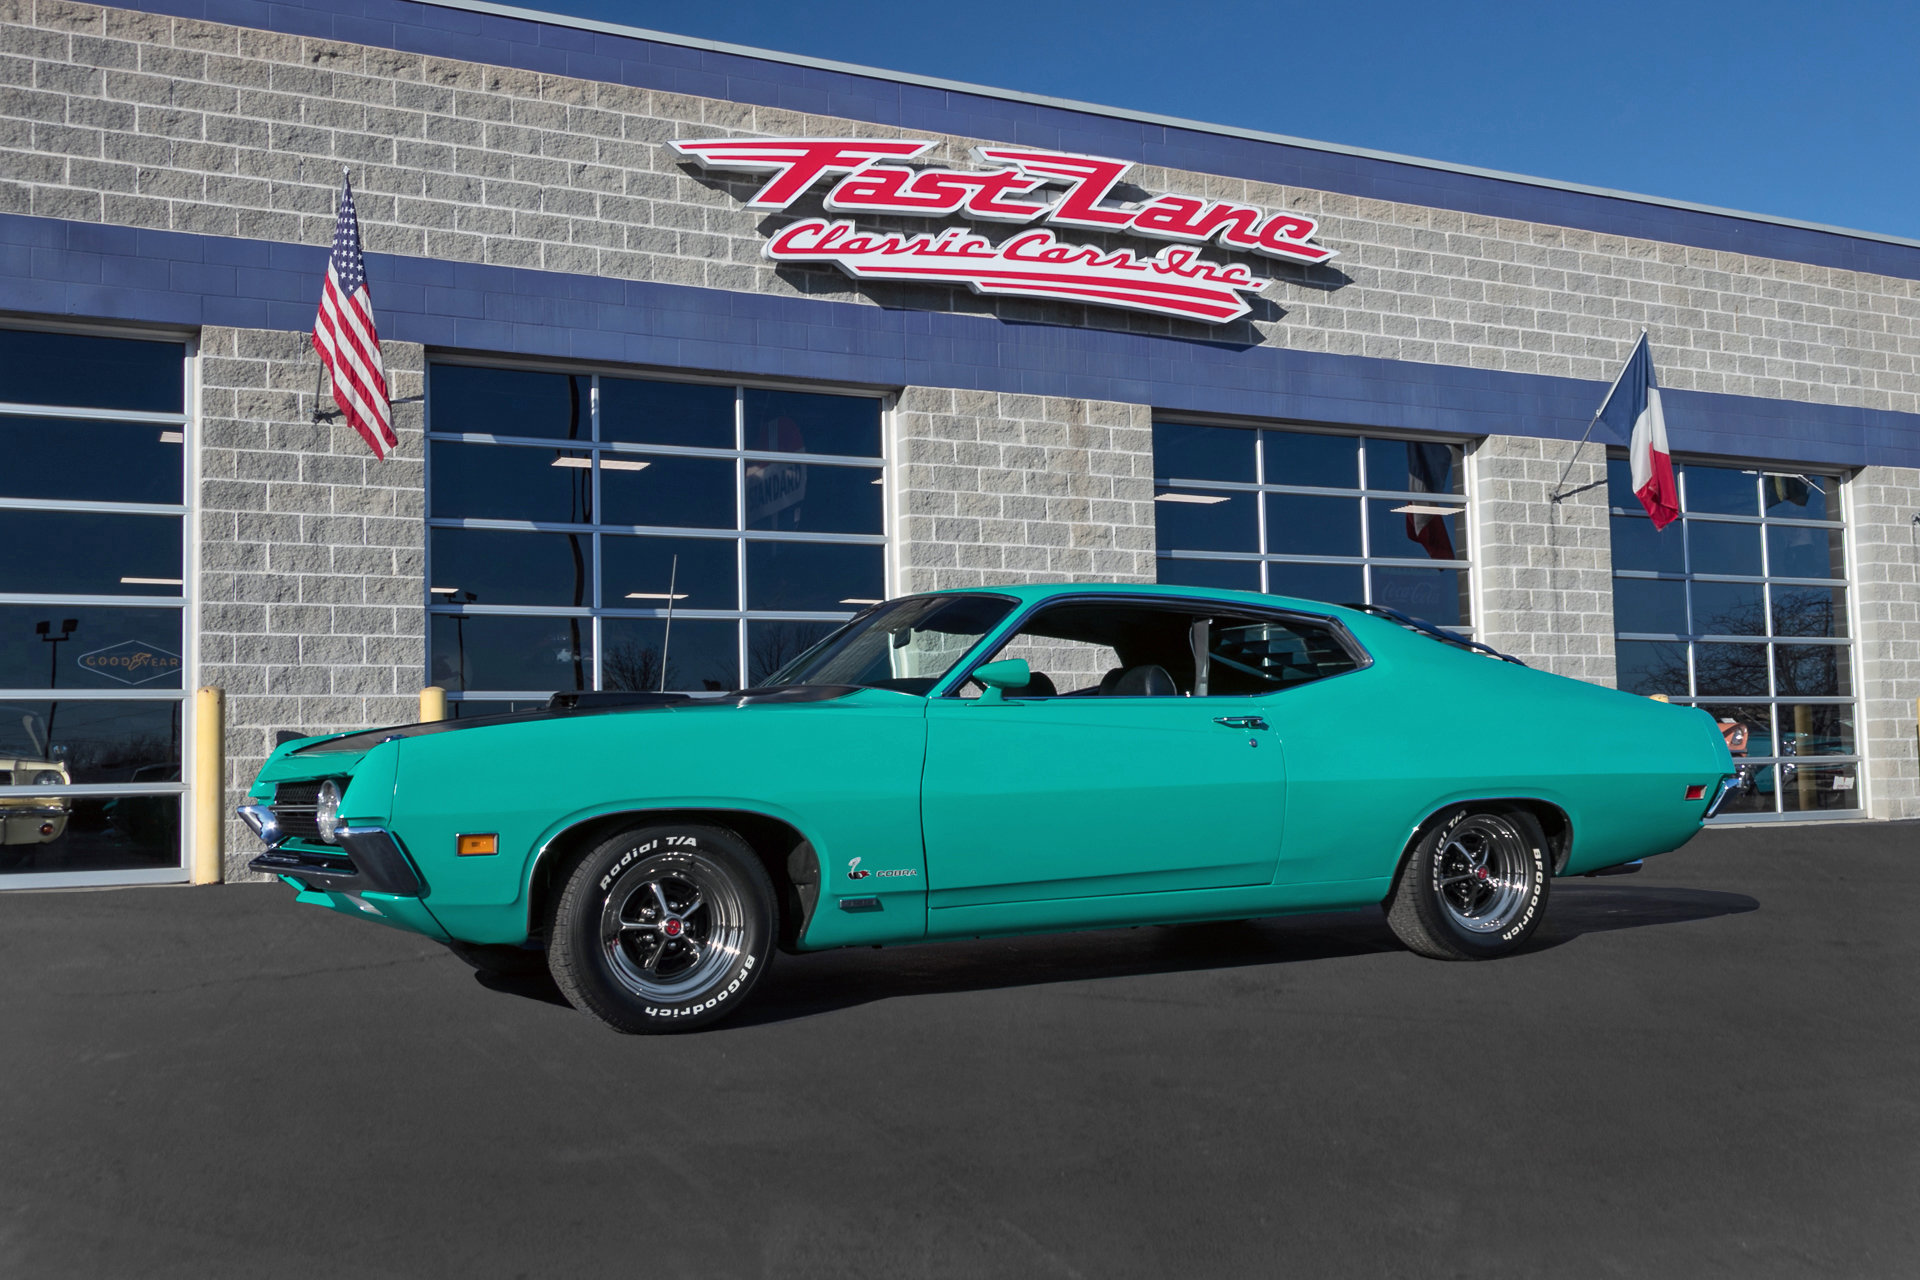 1970 Ford Torino Fast Lane Classic Cars Thunderbird 2 Door